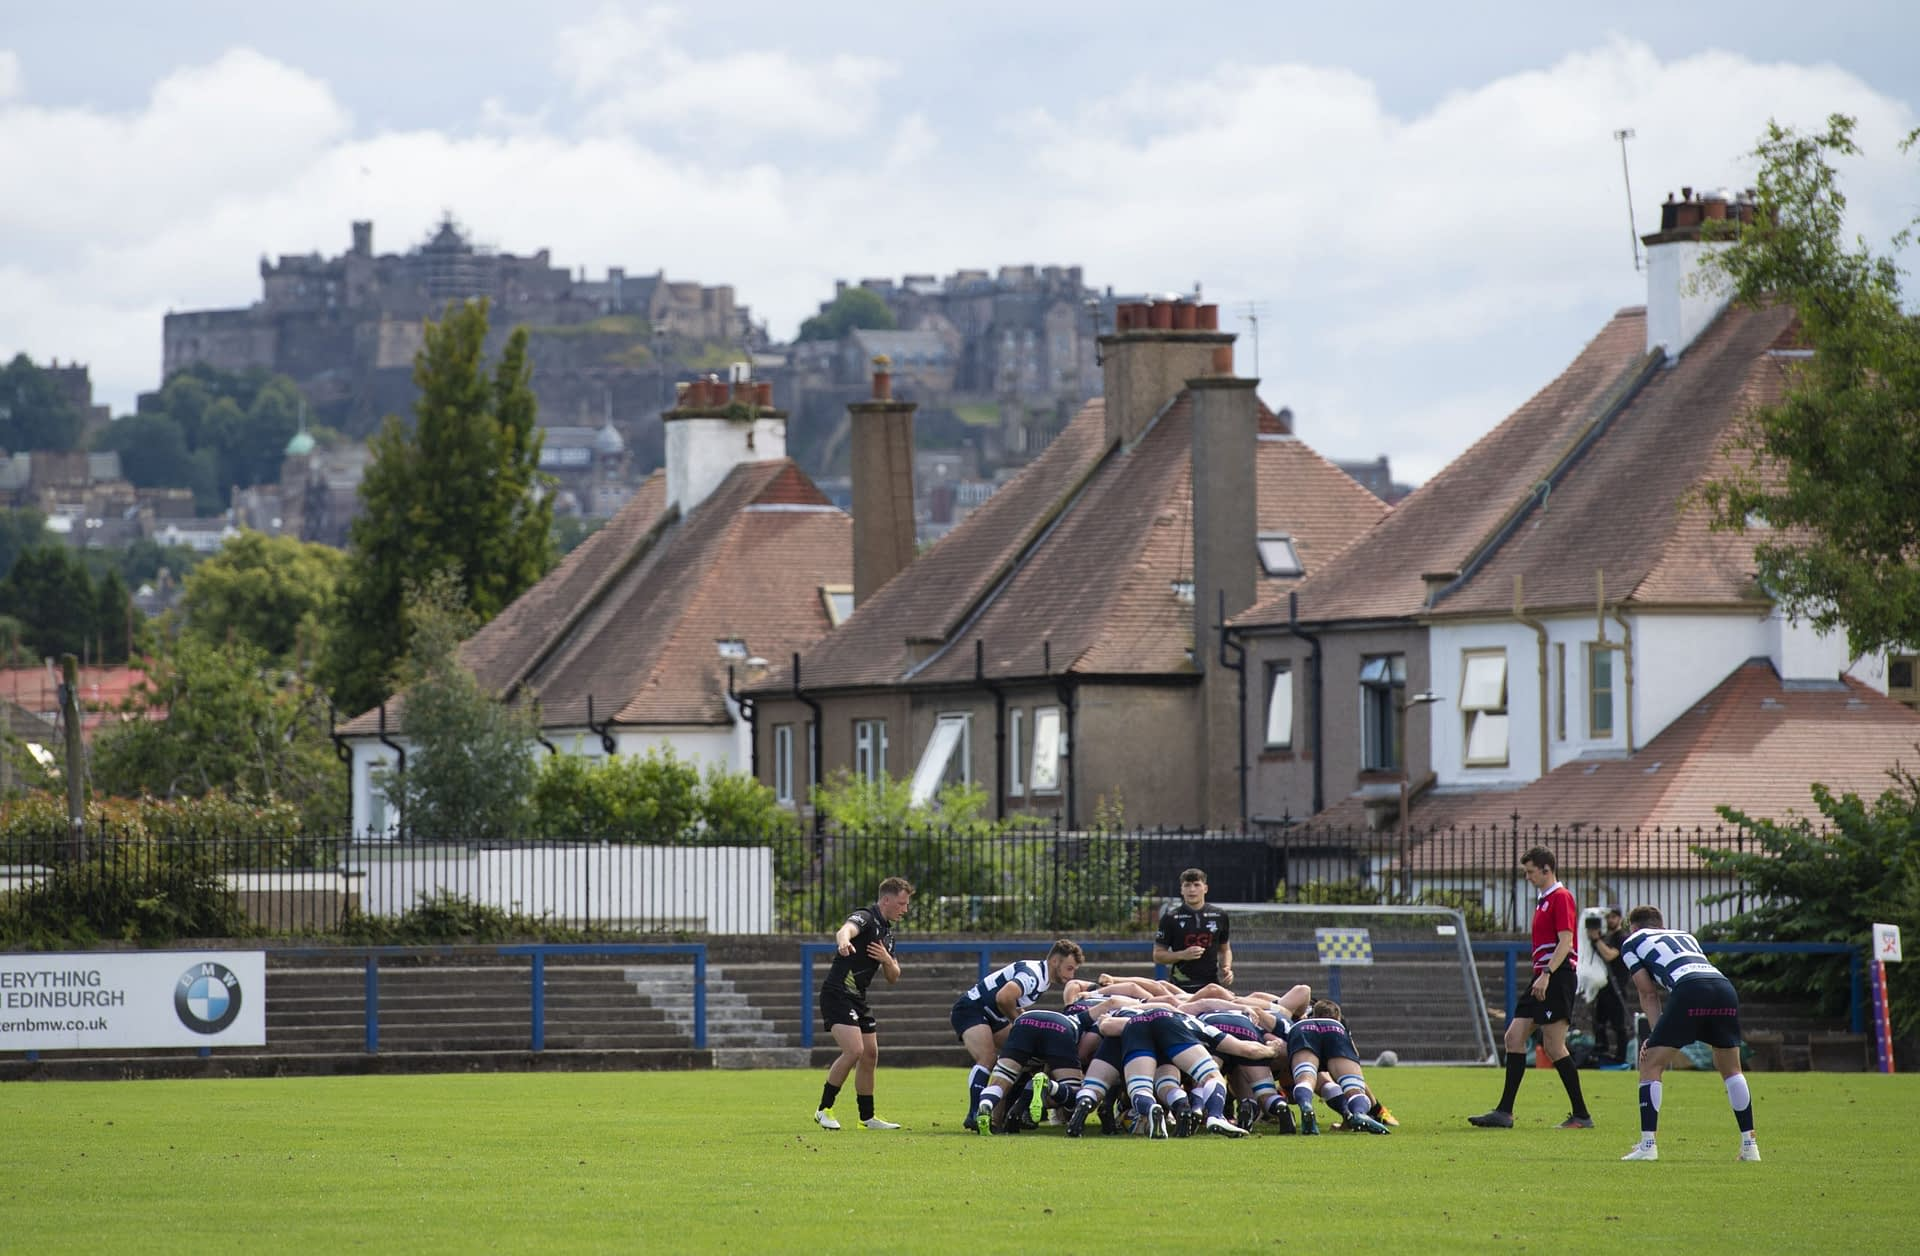 EDINBURGH, SCOTLAND - AUGUST 08: A wide view during a FOSROC Super6 match between Heriot's and Southern Knights at Heriot's Rugby Club, on August 08, 2021, in Edinburgh, Scotland. (Photo by Paul Devlin / SNS Group)